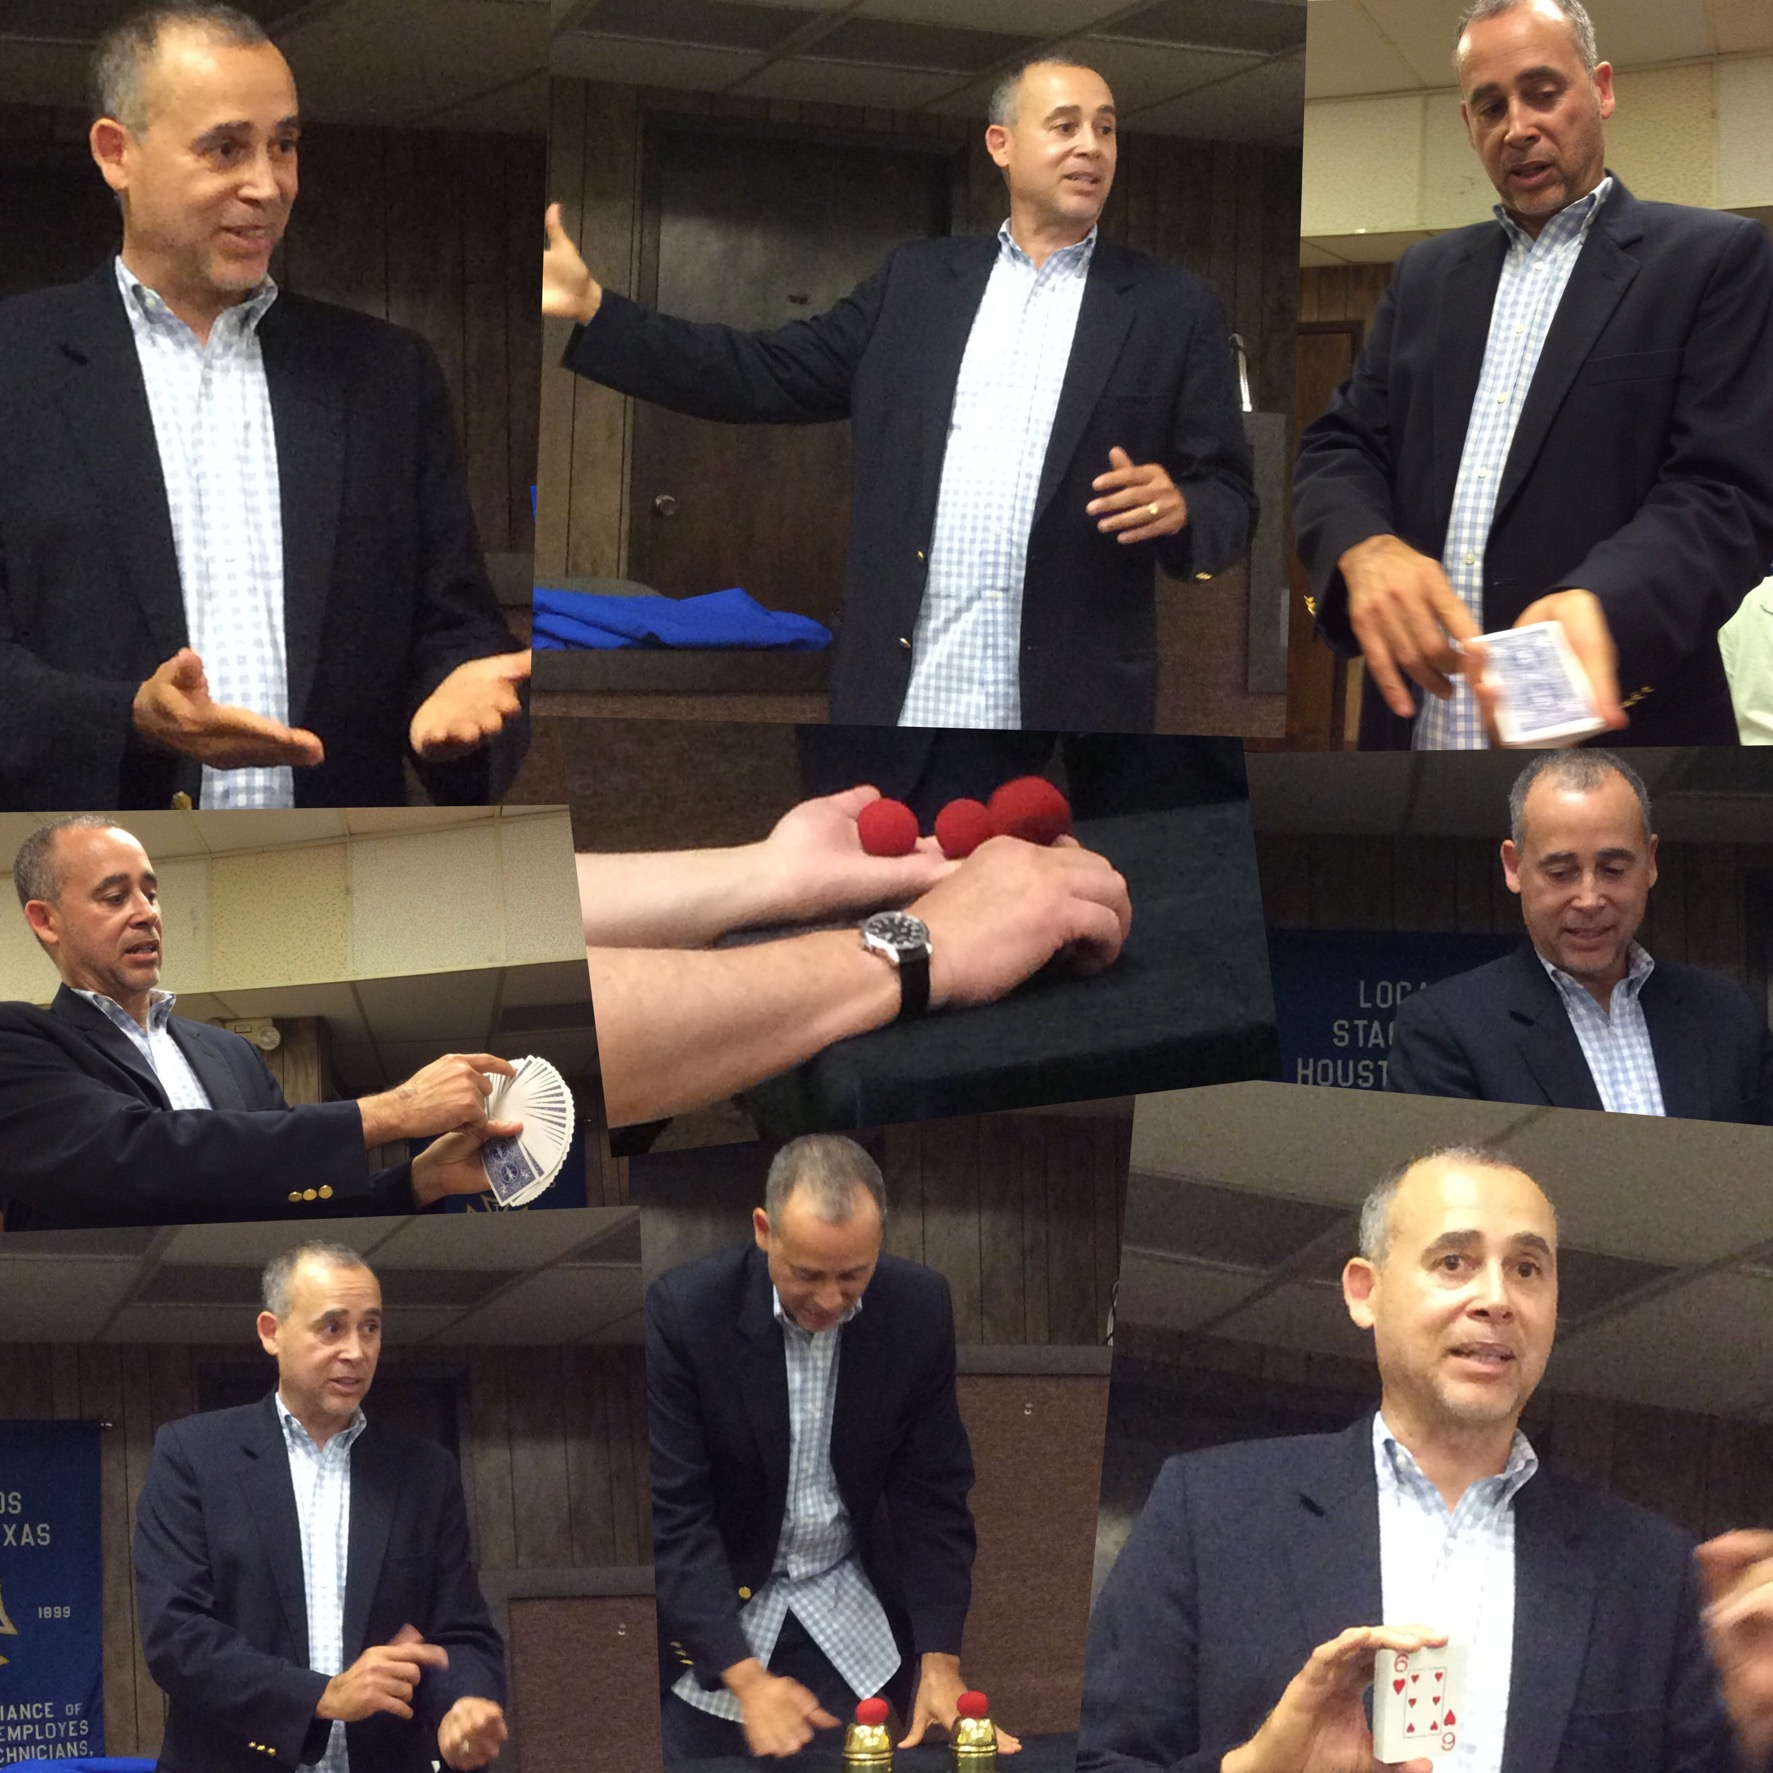 Carl Andrews lectures for the Houston Association of Magicians